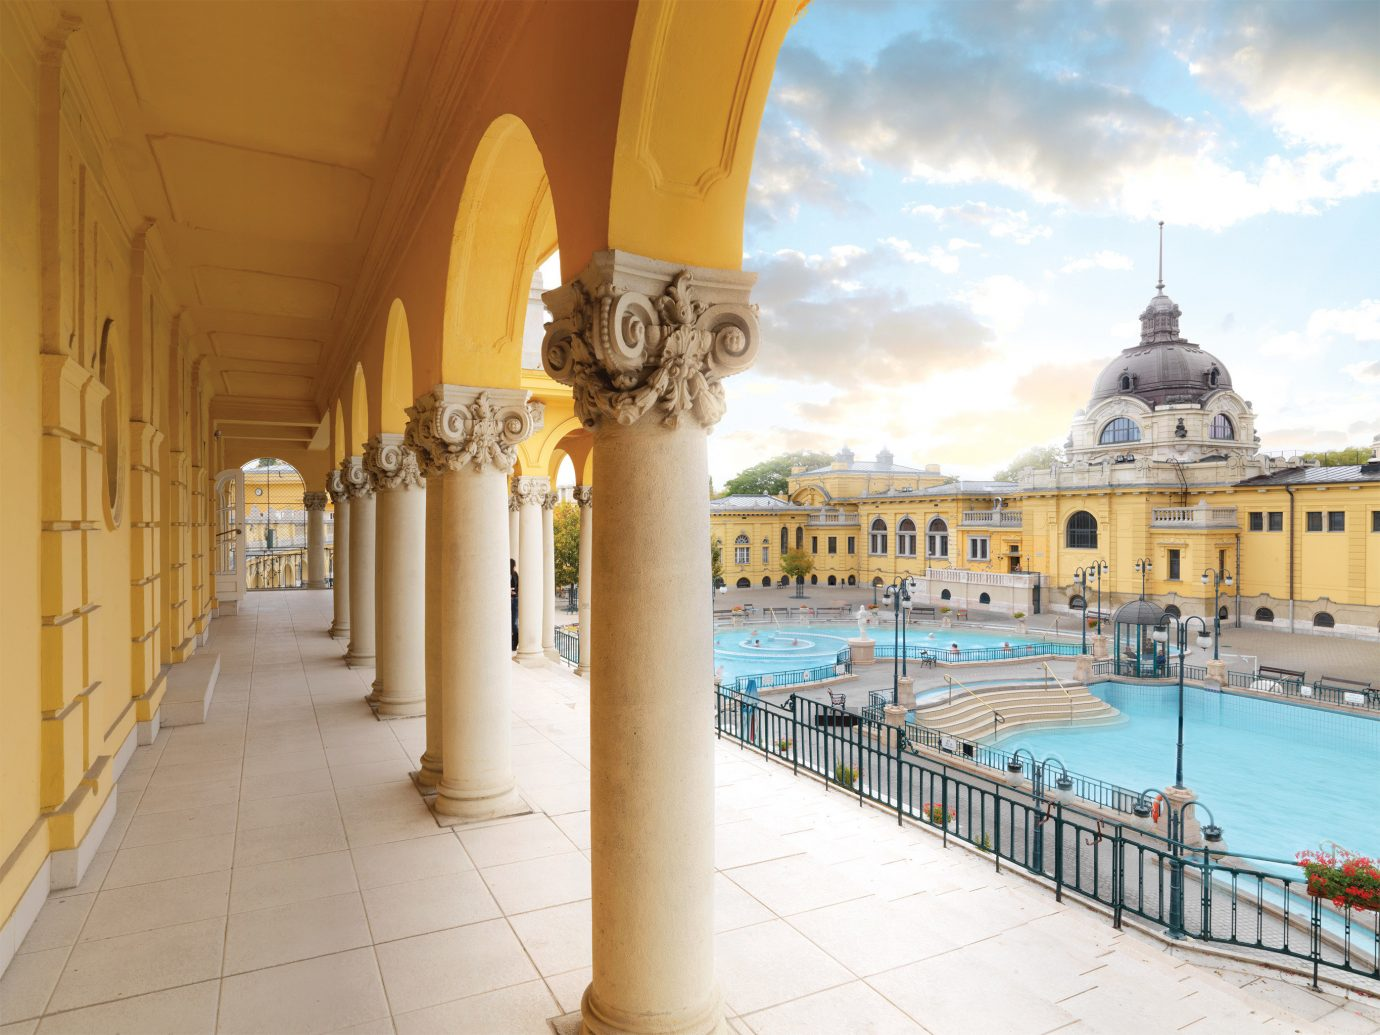 Architecture Budapest Buildings City Elegant europe Historic Hotels Hungary Landmarks Natural wonders Waterfront building palace estate plaza temple walkway colonnade